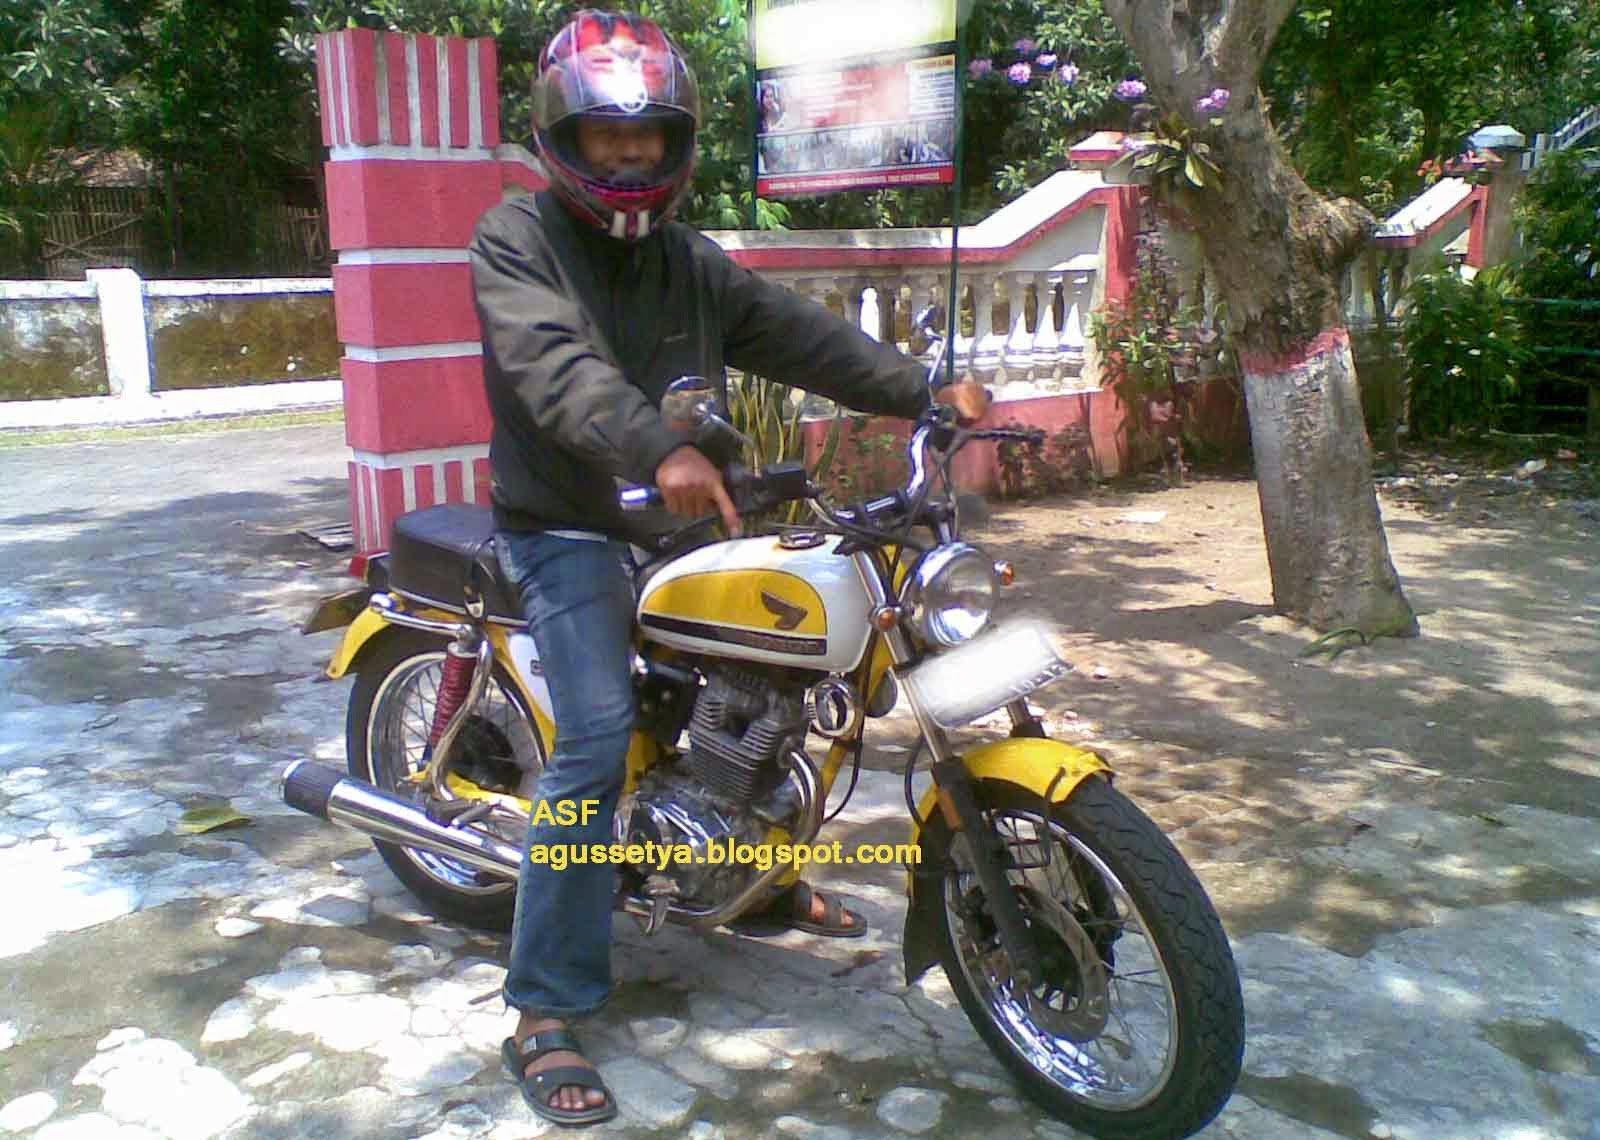 Download Kumpulan 83 Modifikasi Motor Cb Minimalis Terkeren Fire Modif